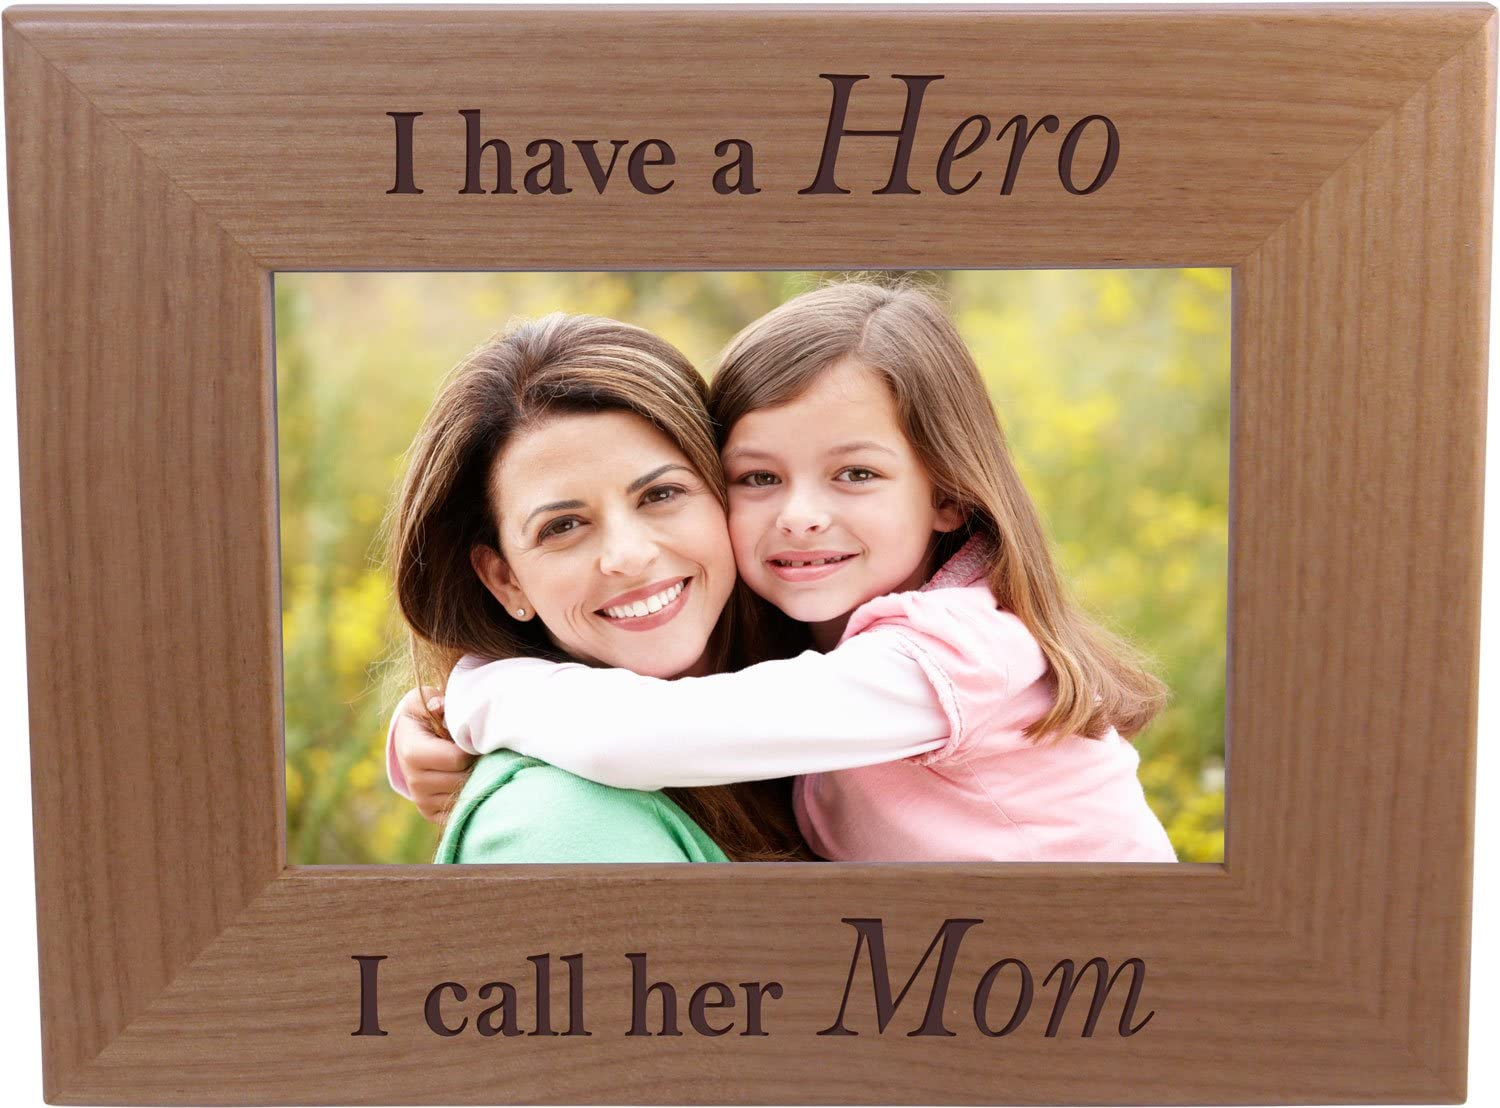 I Have A Hero I Call Her Mom - 4x6 Inch Wood Picture Frame - Great Gift for Mothers's Day, Birthday for Mom Grandma Wife Grandmother